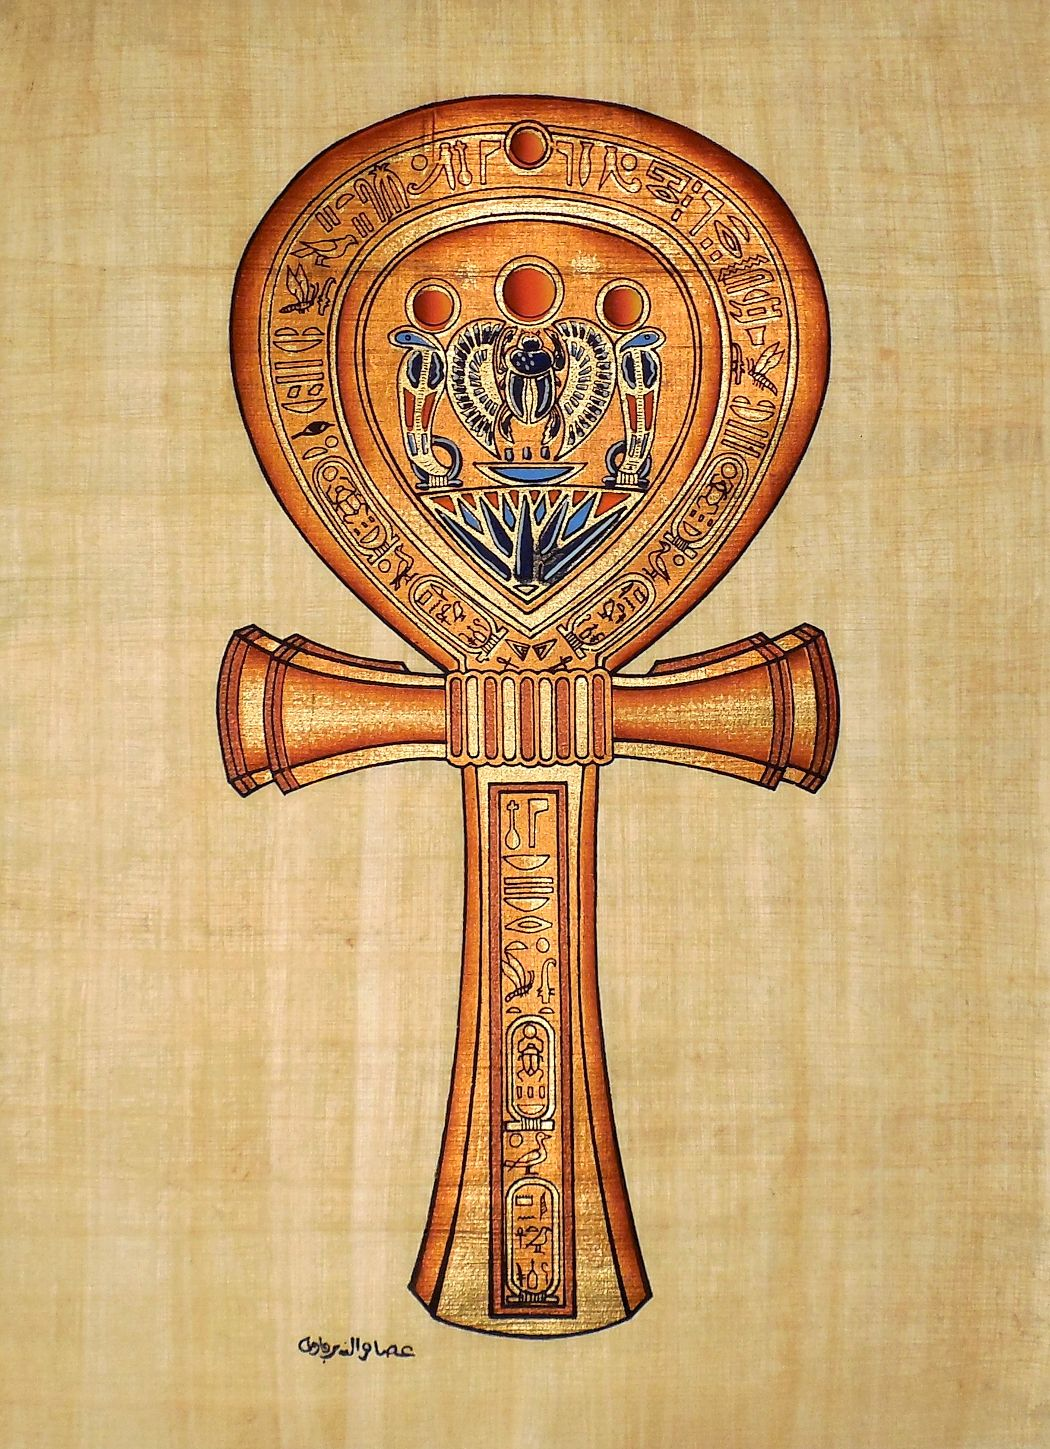 ankh ancient egyptian papyrus painting ancient